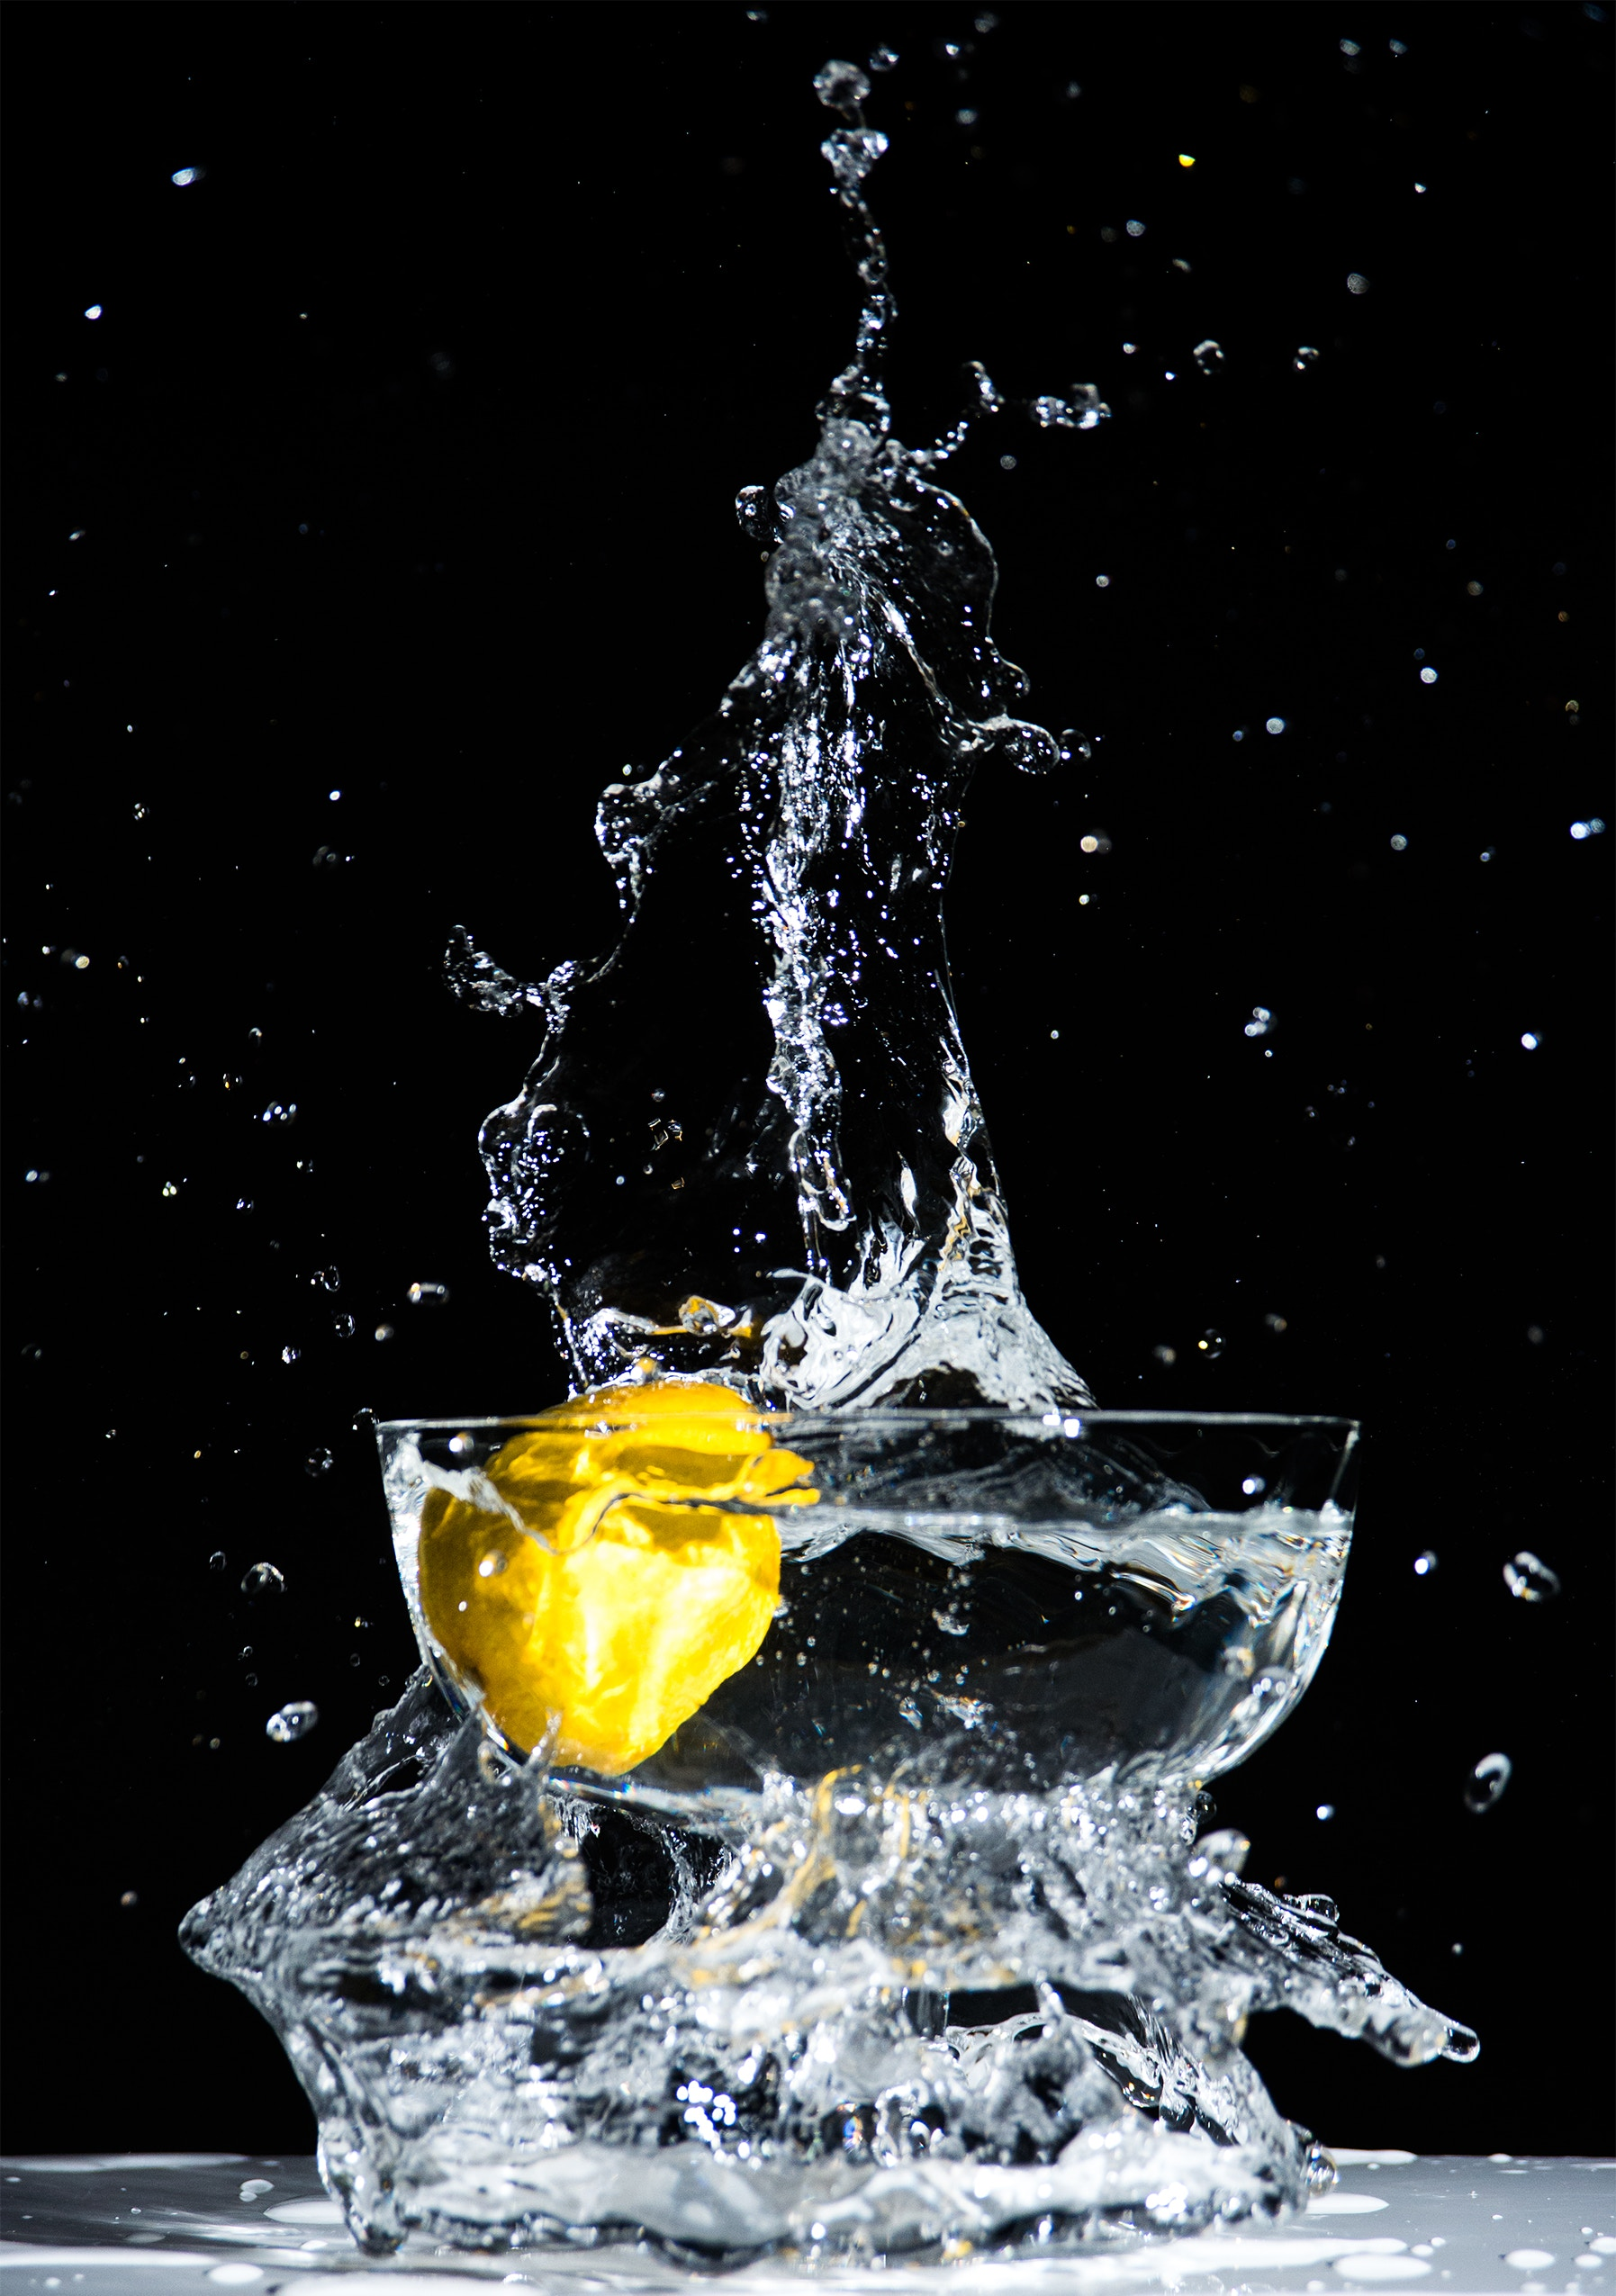 57913 download wallpaper Water, Macro, Spray, Lemon, Moment, Just A Moment screensavers and pictures for free